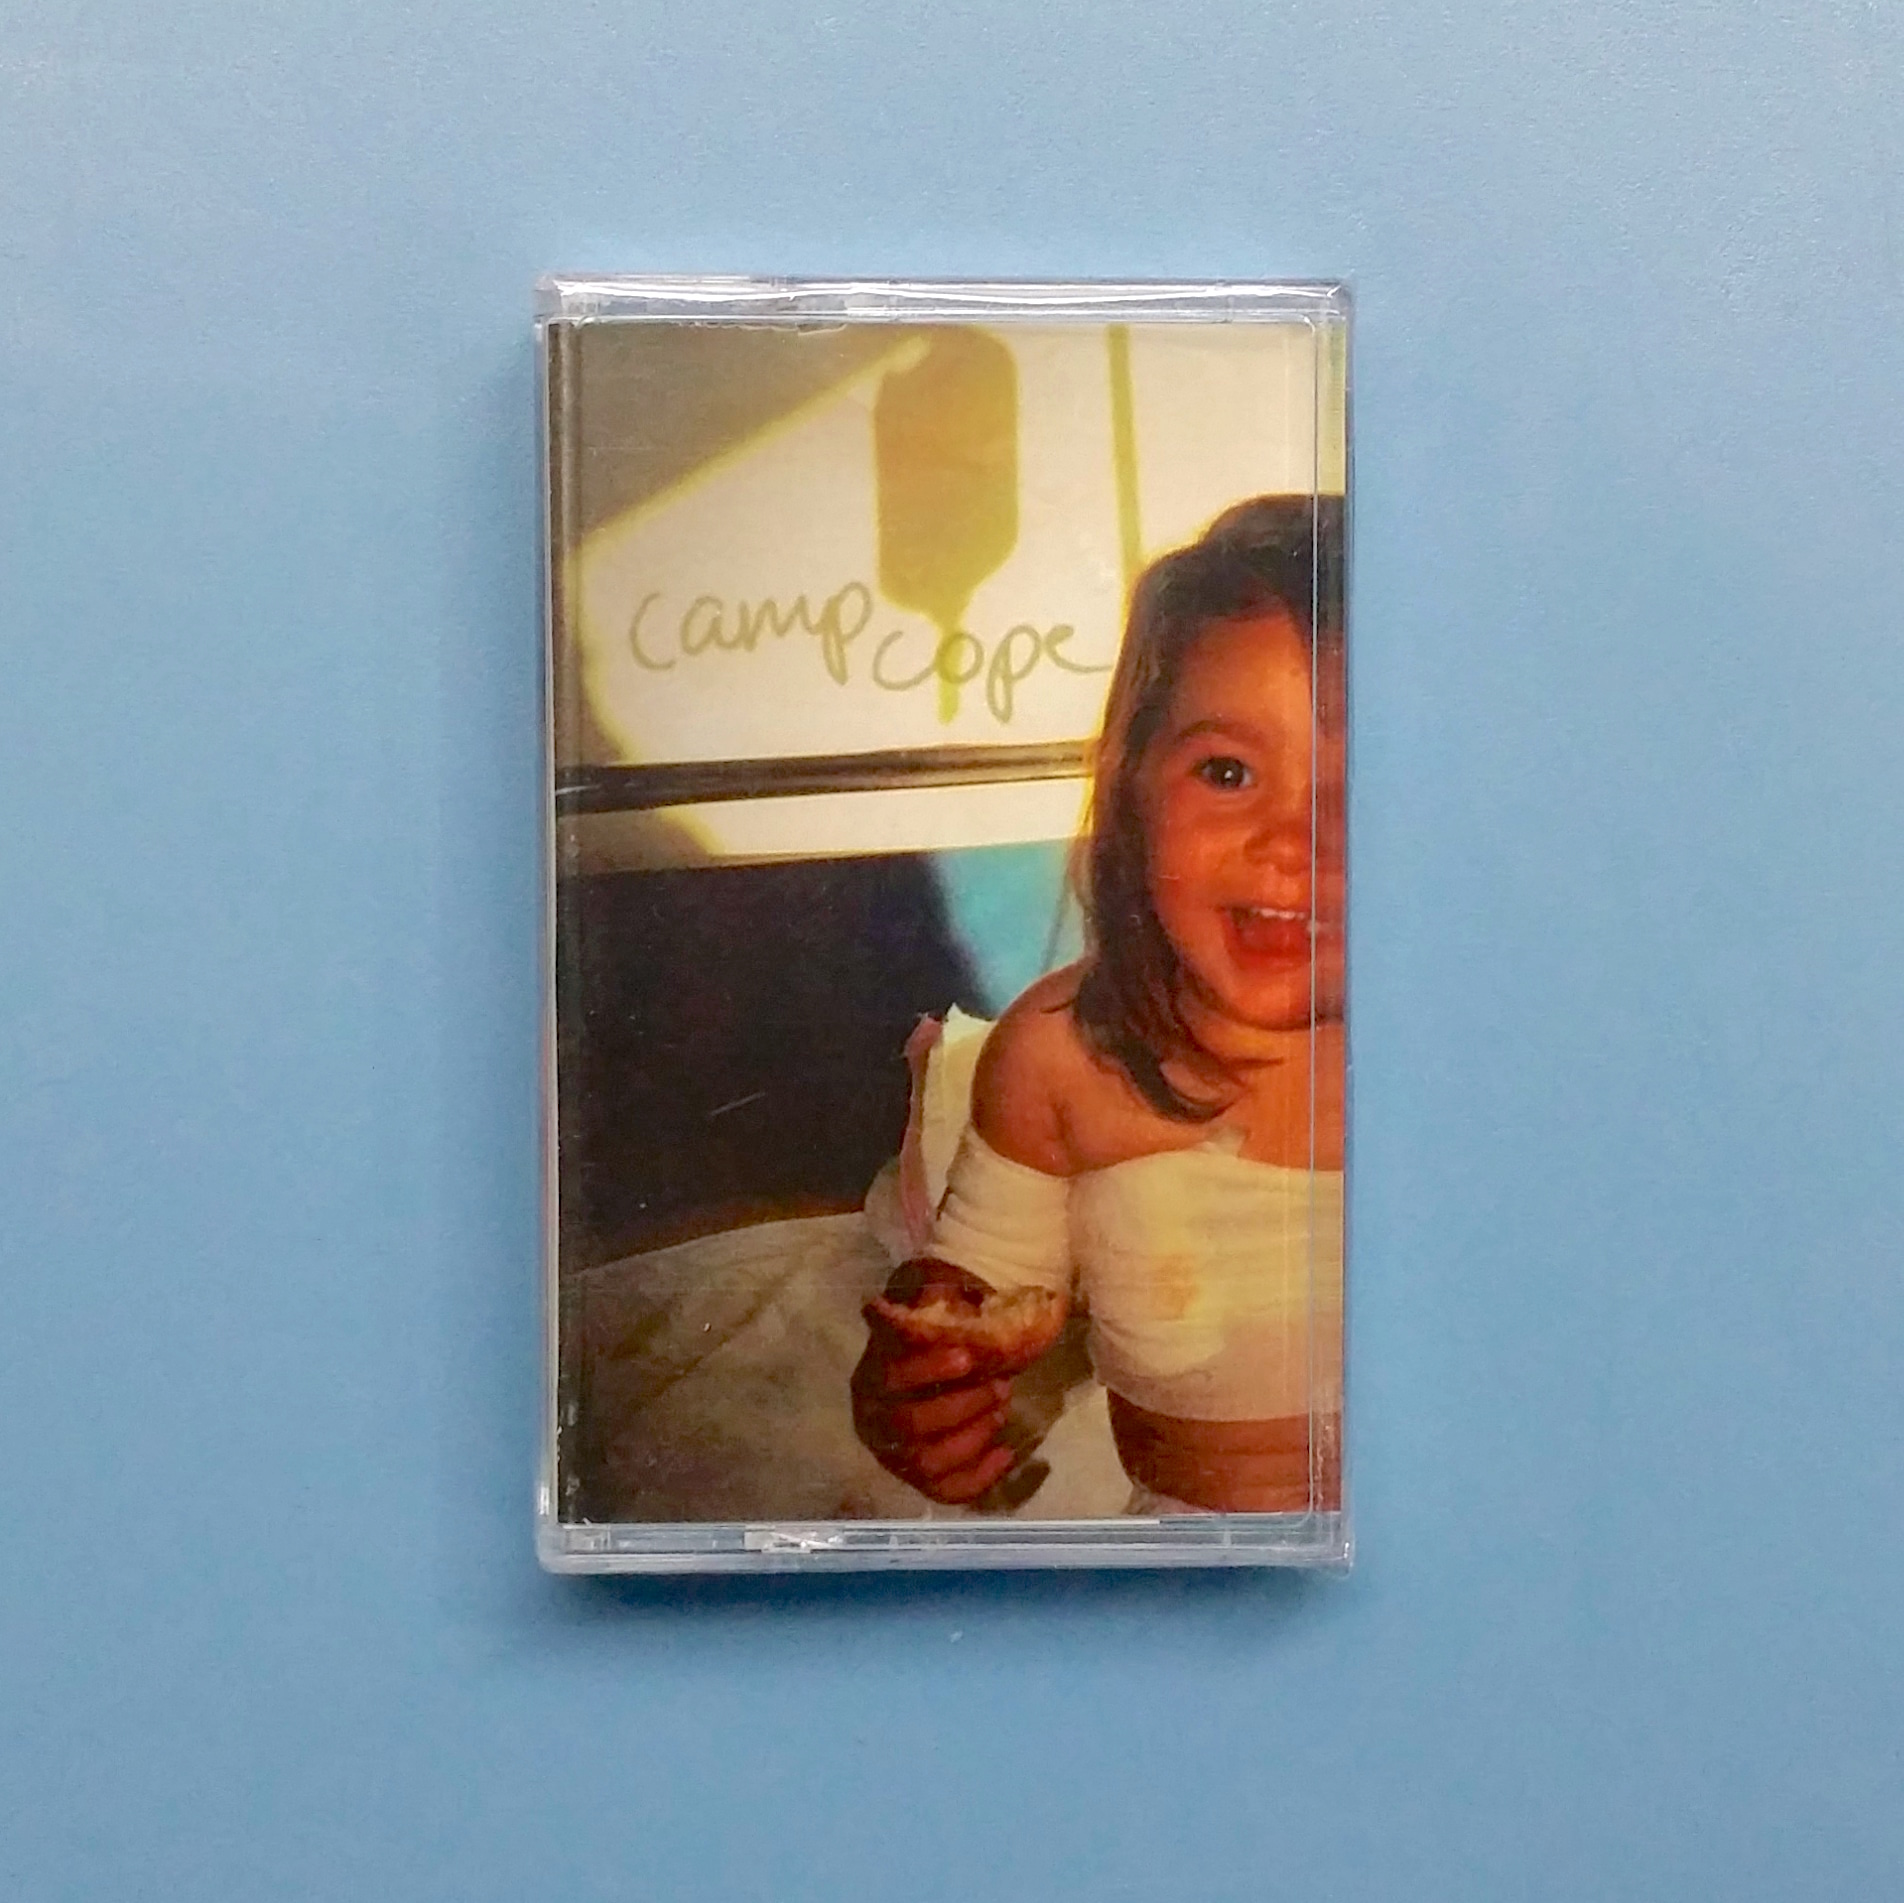 [SOLD] Camp Cope - Camp Cope (Run for Cover Records)